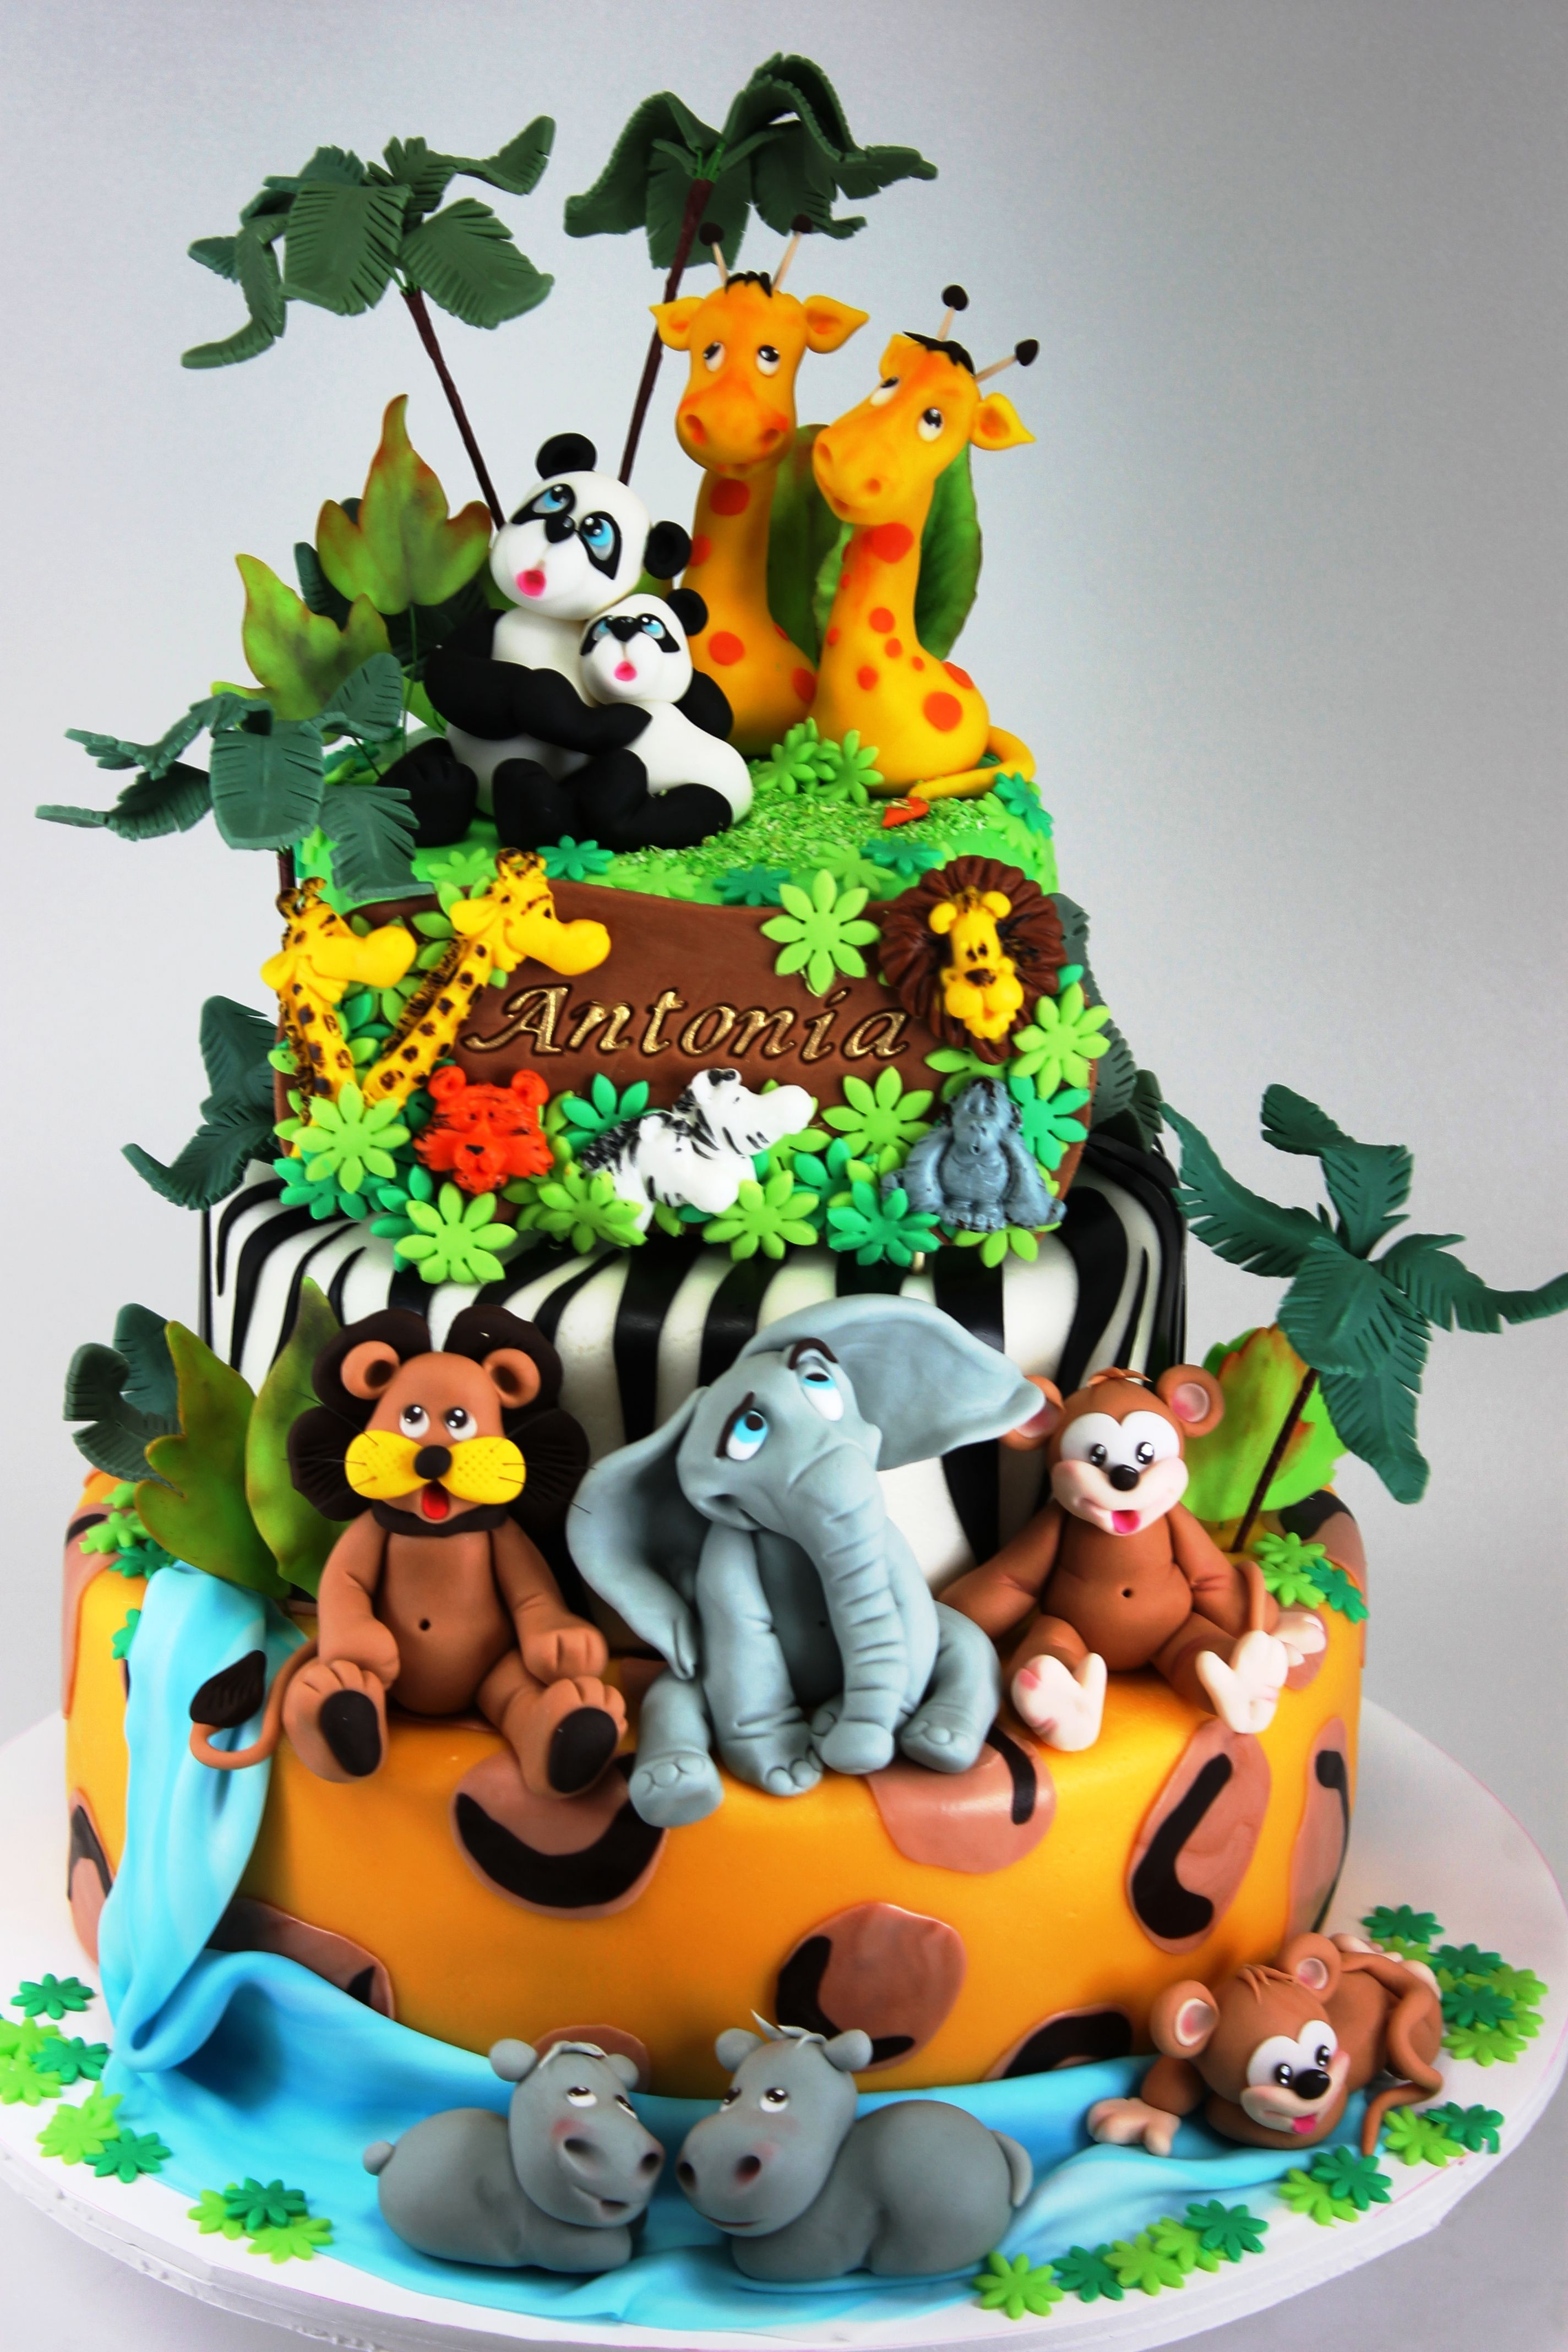 50 Best Zoo Birthday Cakes Ideas And Designs 2019 With Images